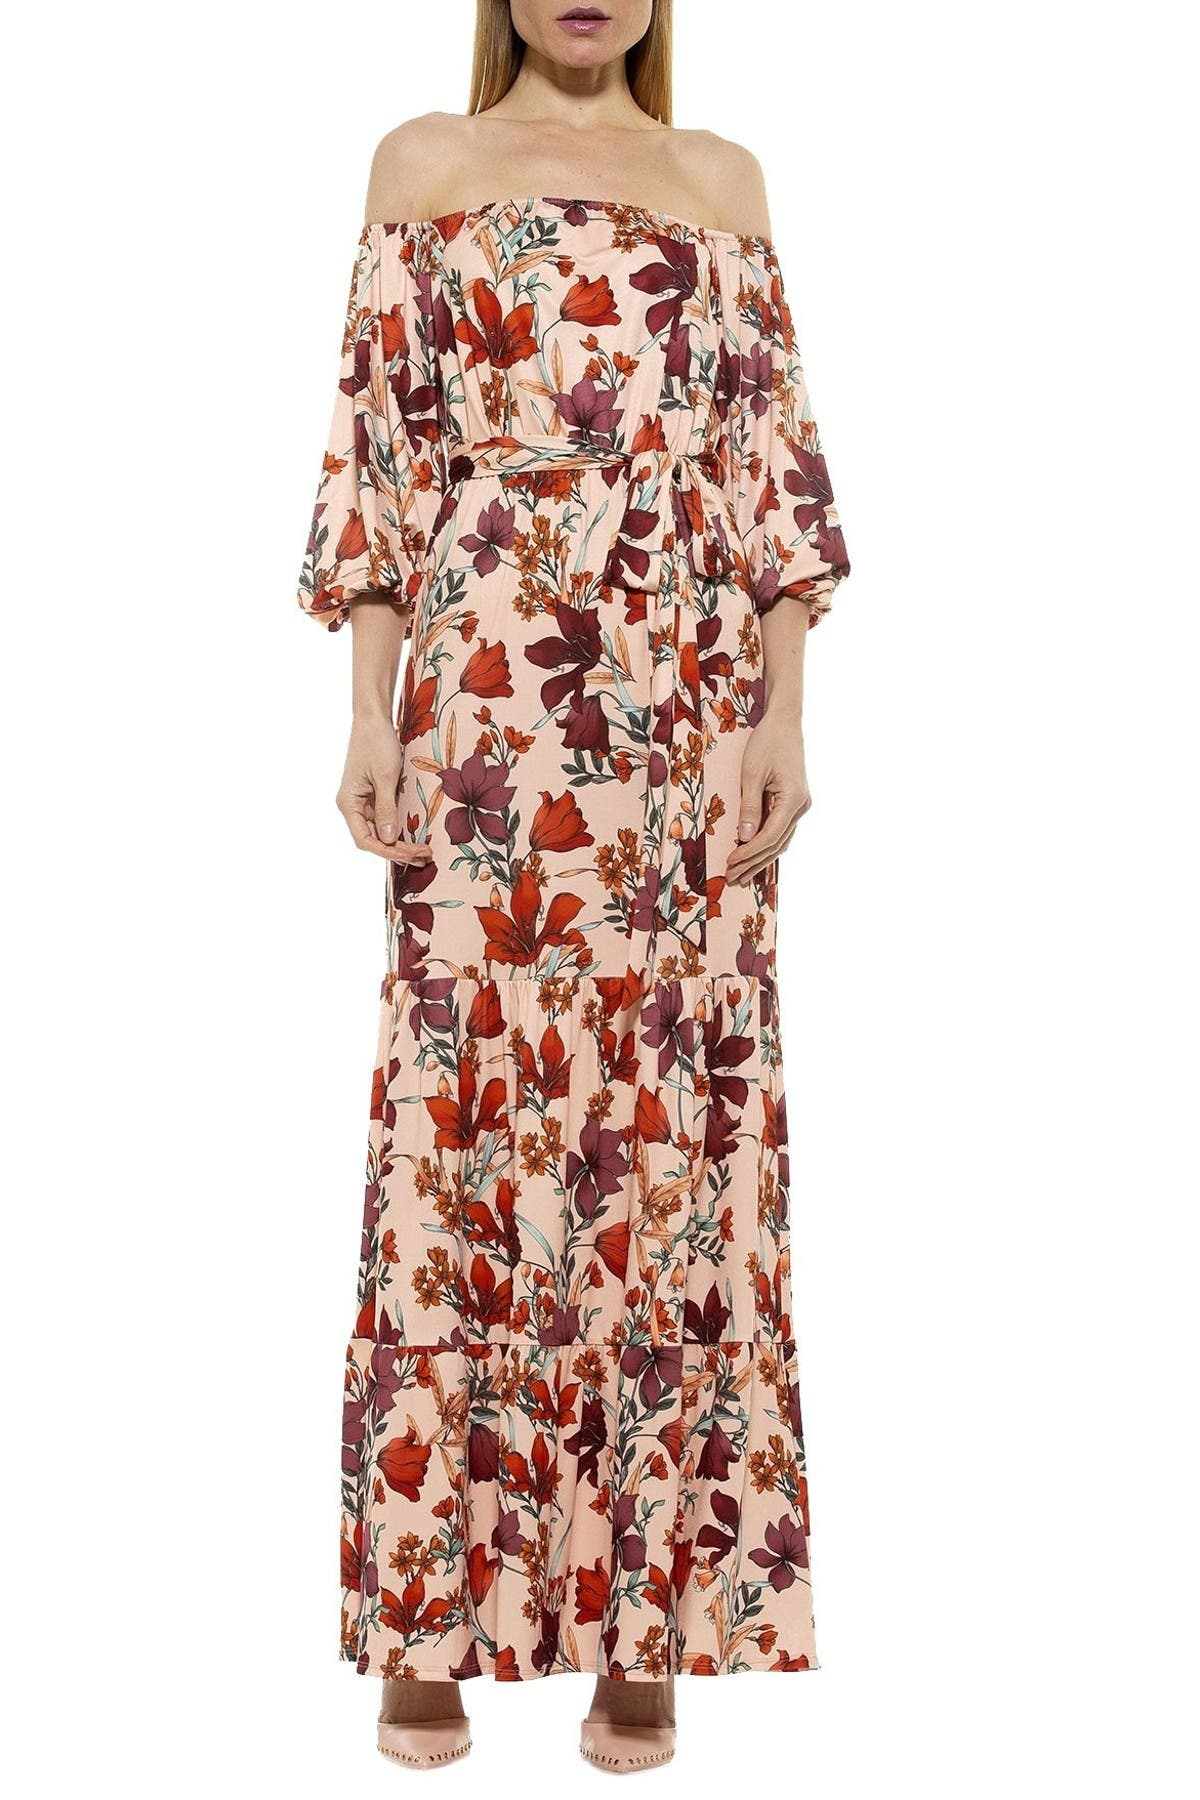 Image of Alexia Admor Calista Off-the-Shoulder Tiered Maxi Dress